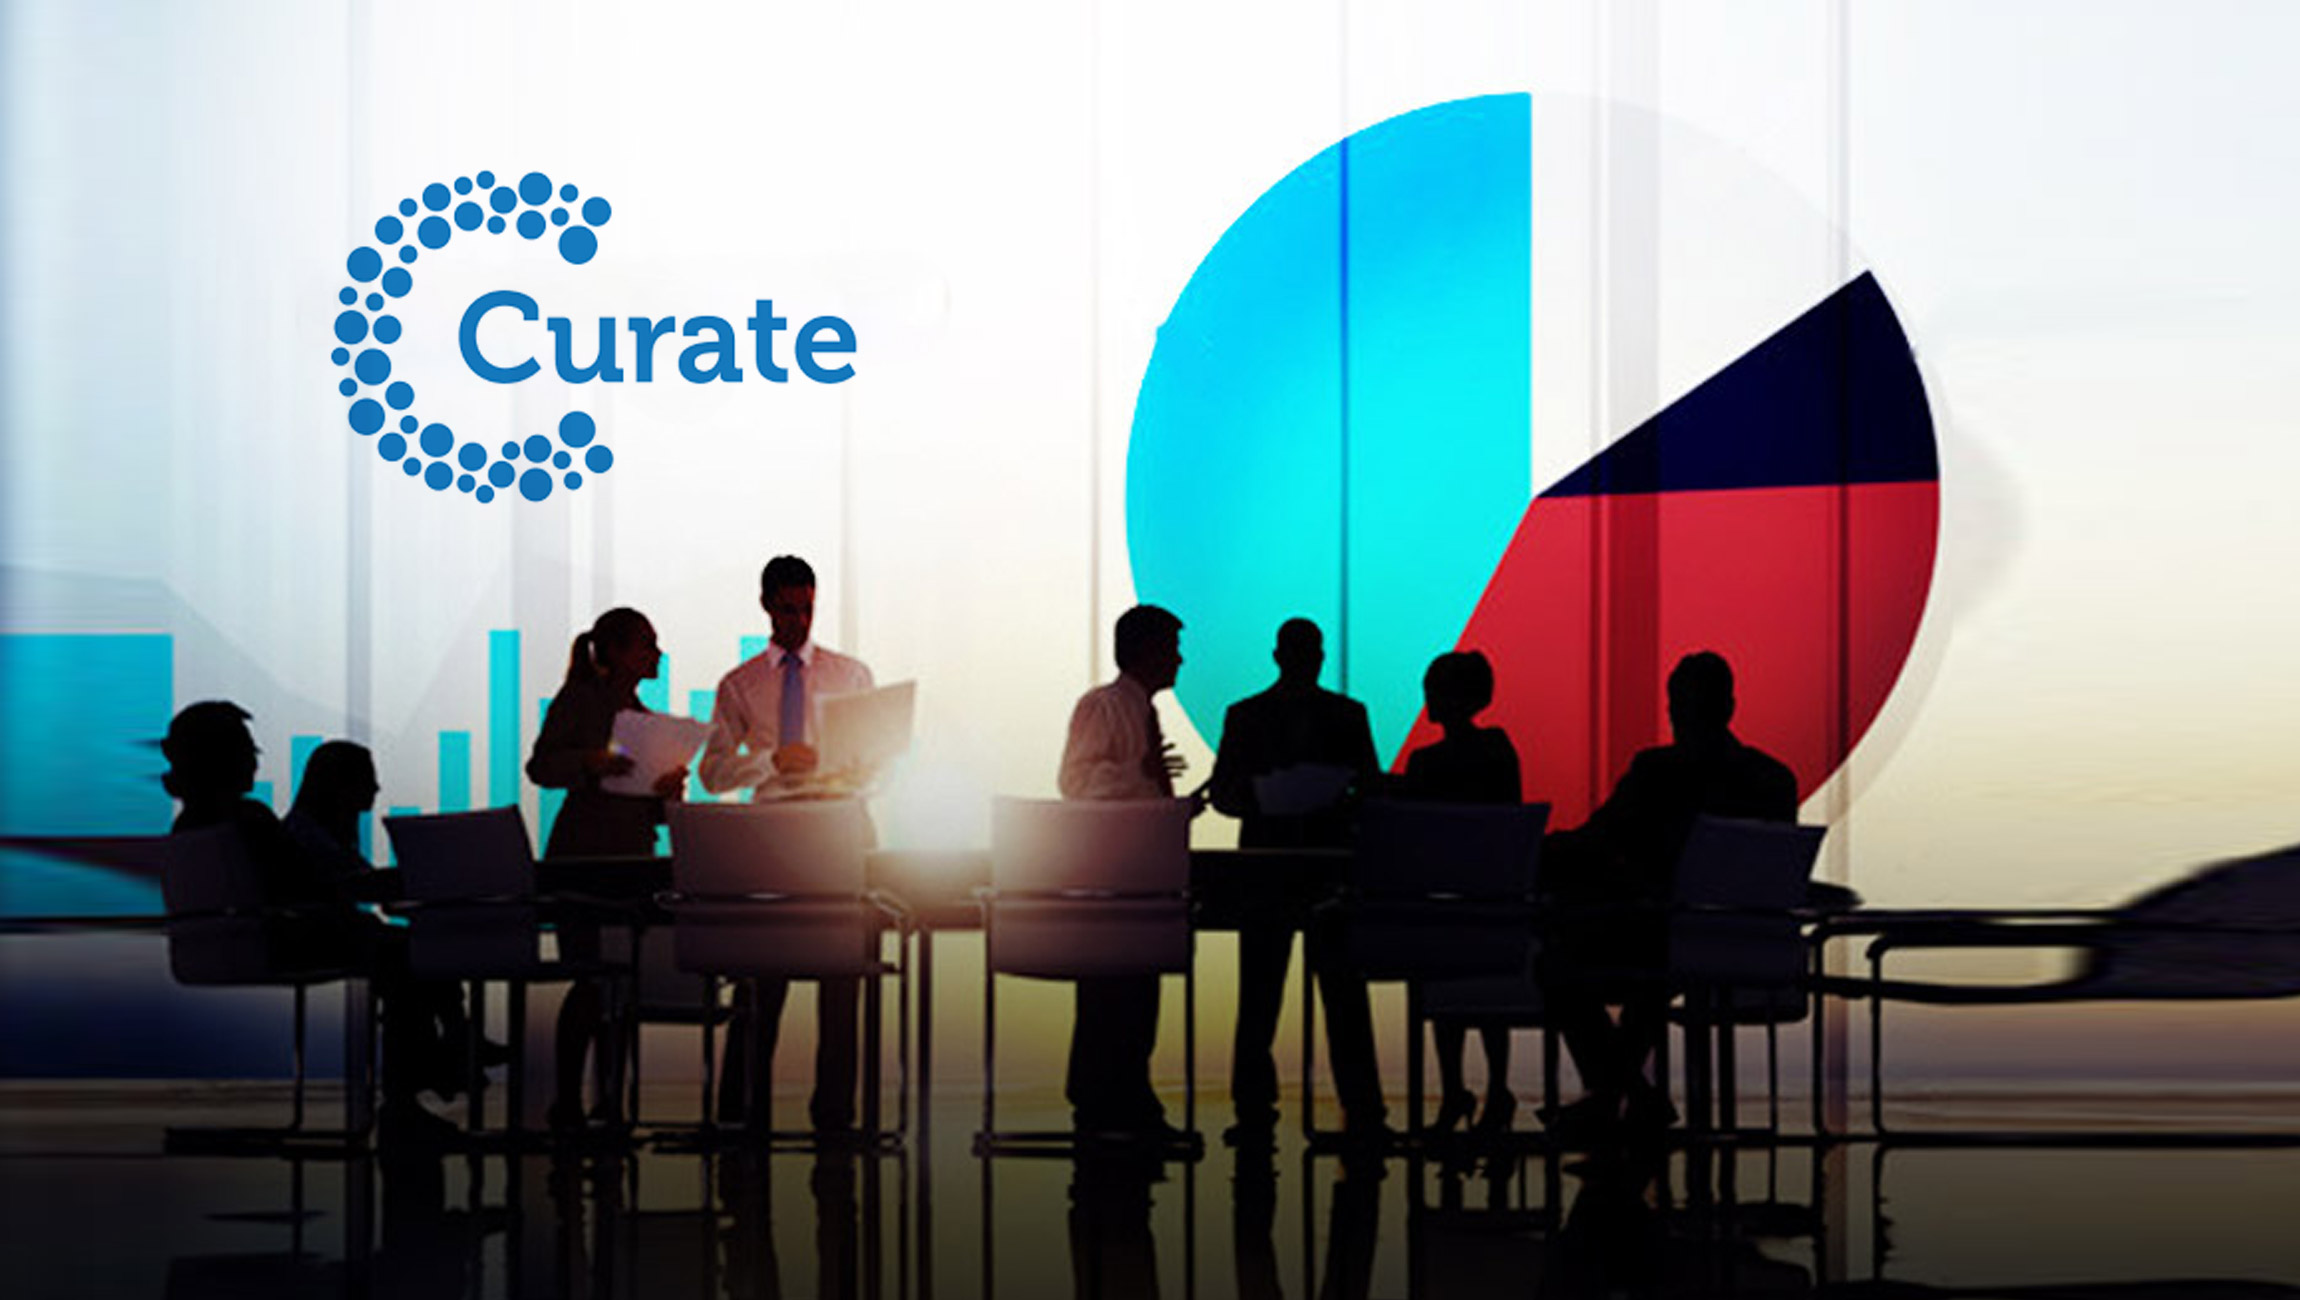 Curate, the Modern Sales and Operations Platform for Creative Small Businesses, Raises $1.25 Million From Square Co-Founder Jim McKelvey, OCA Ventures, and Others